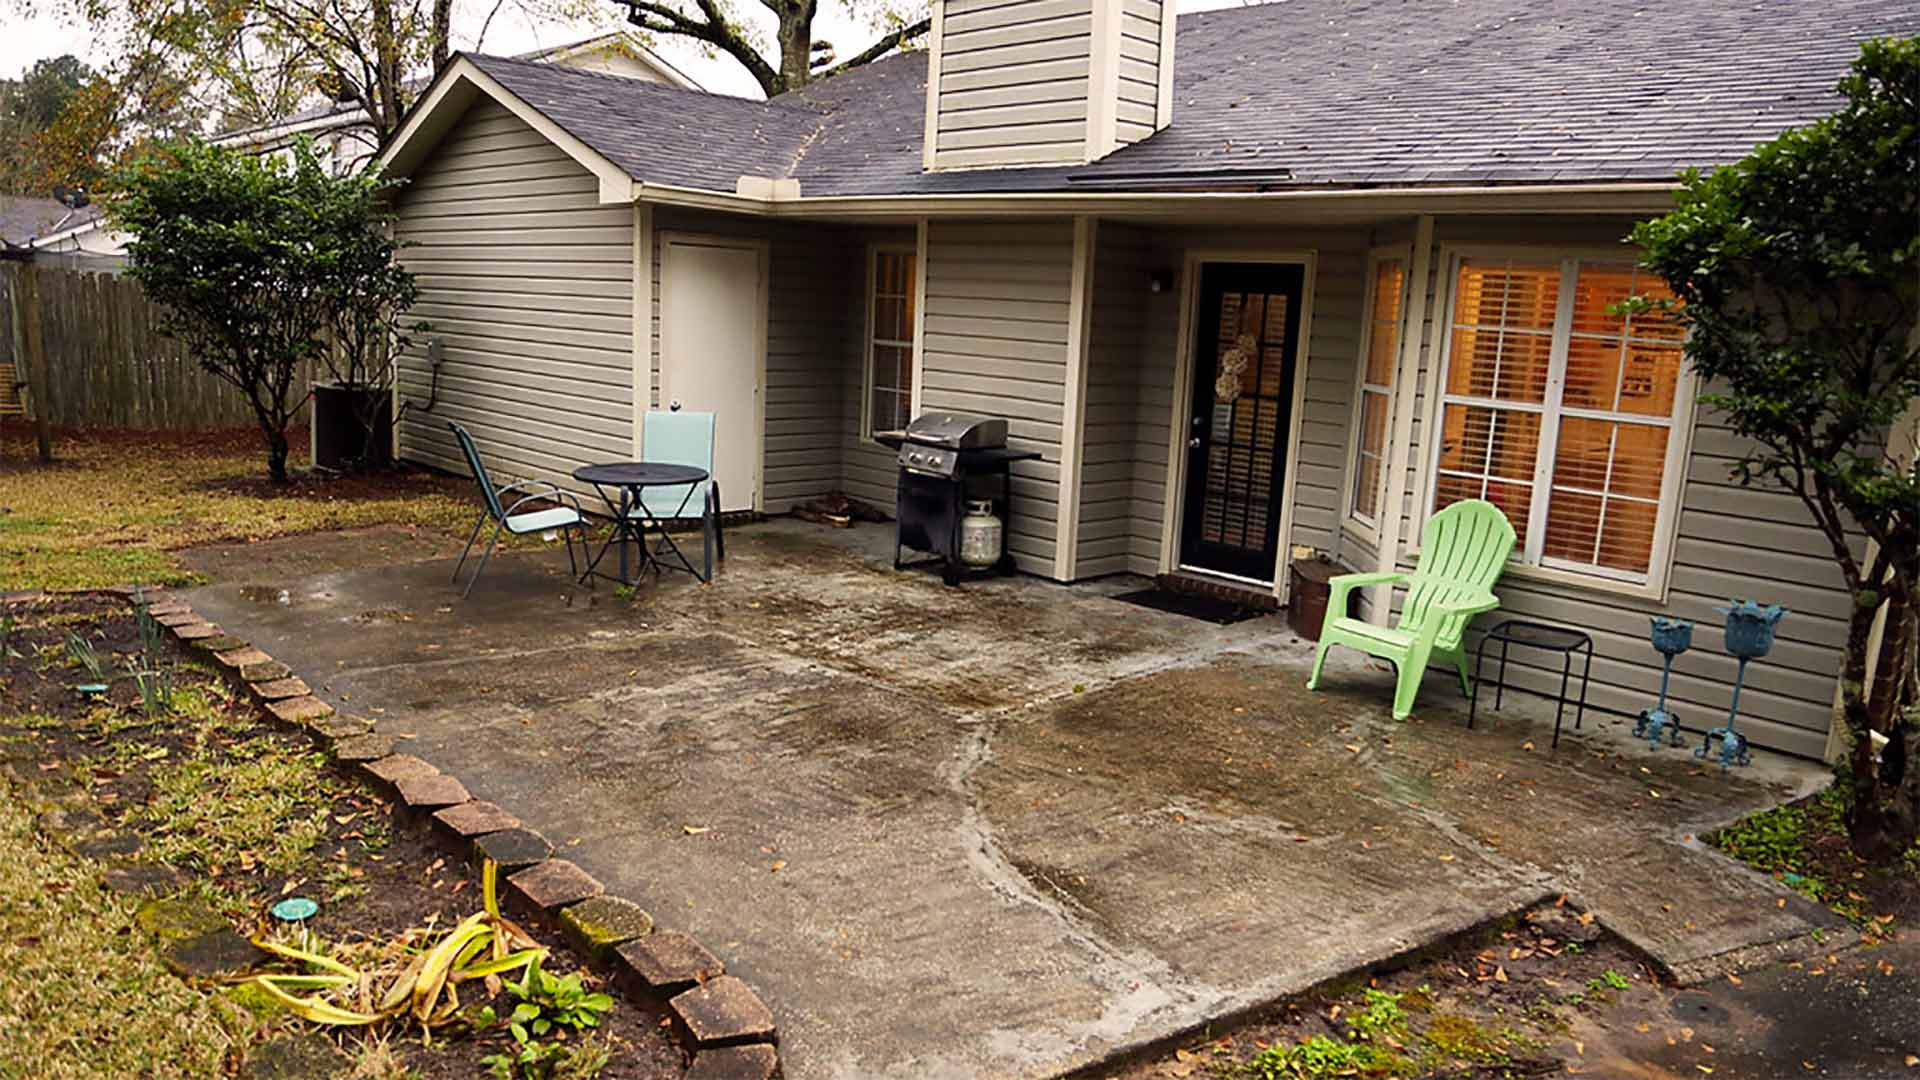 Worn-out concrete patio on a gloomy Sunday